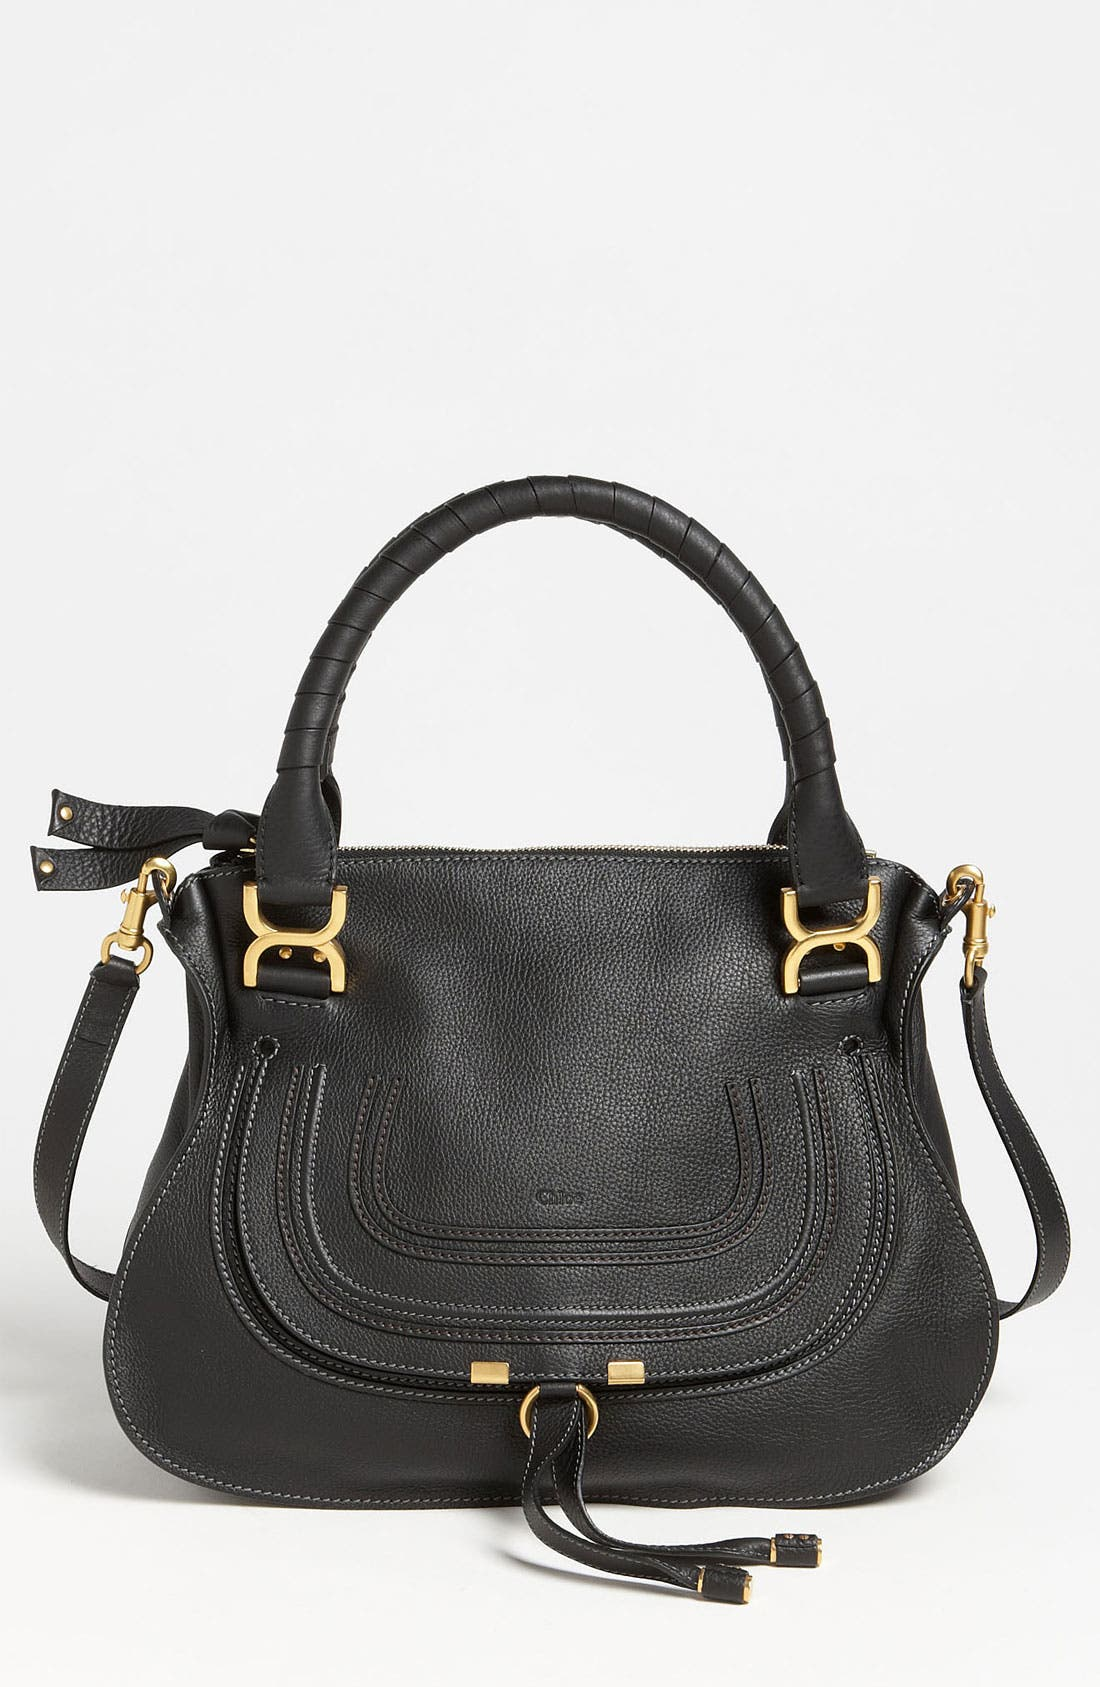 'Medium Marcie' Leather Satchel,                             Main thumbnail 1, color,                             BLACK GOLD HRDWRE